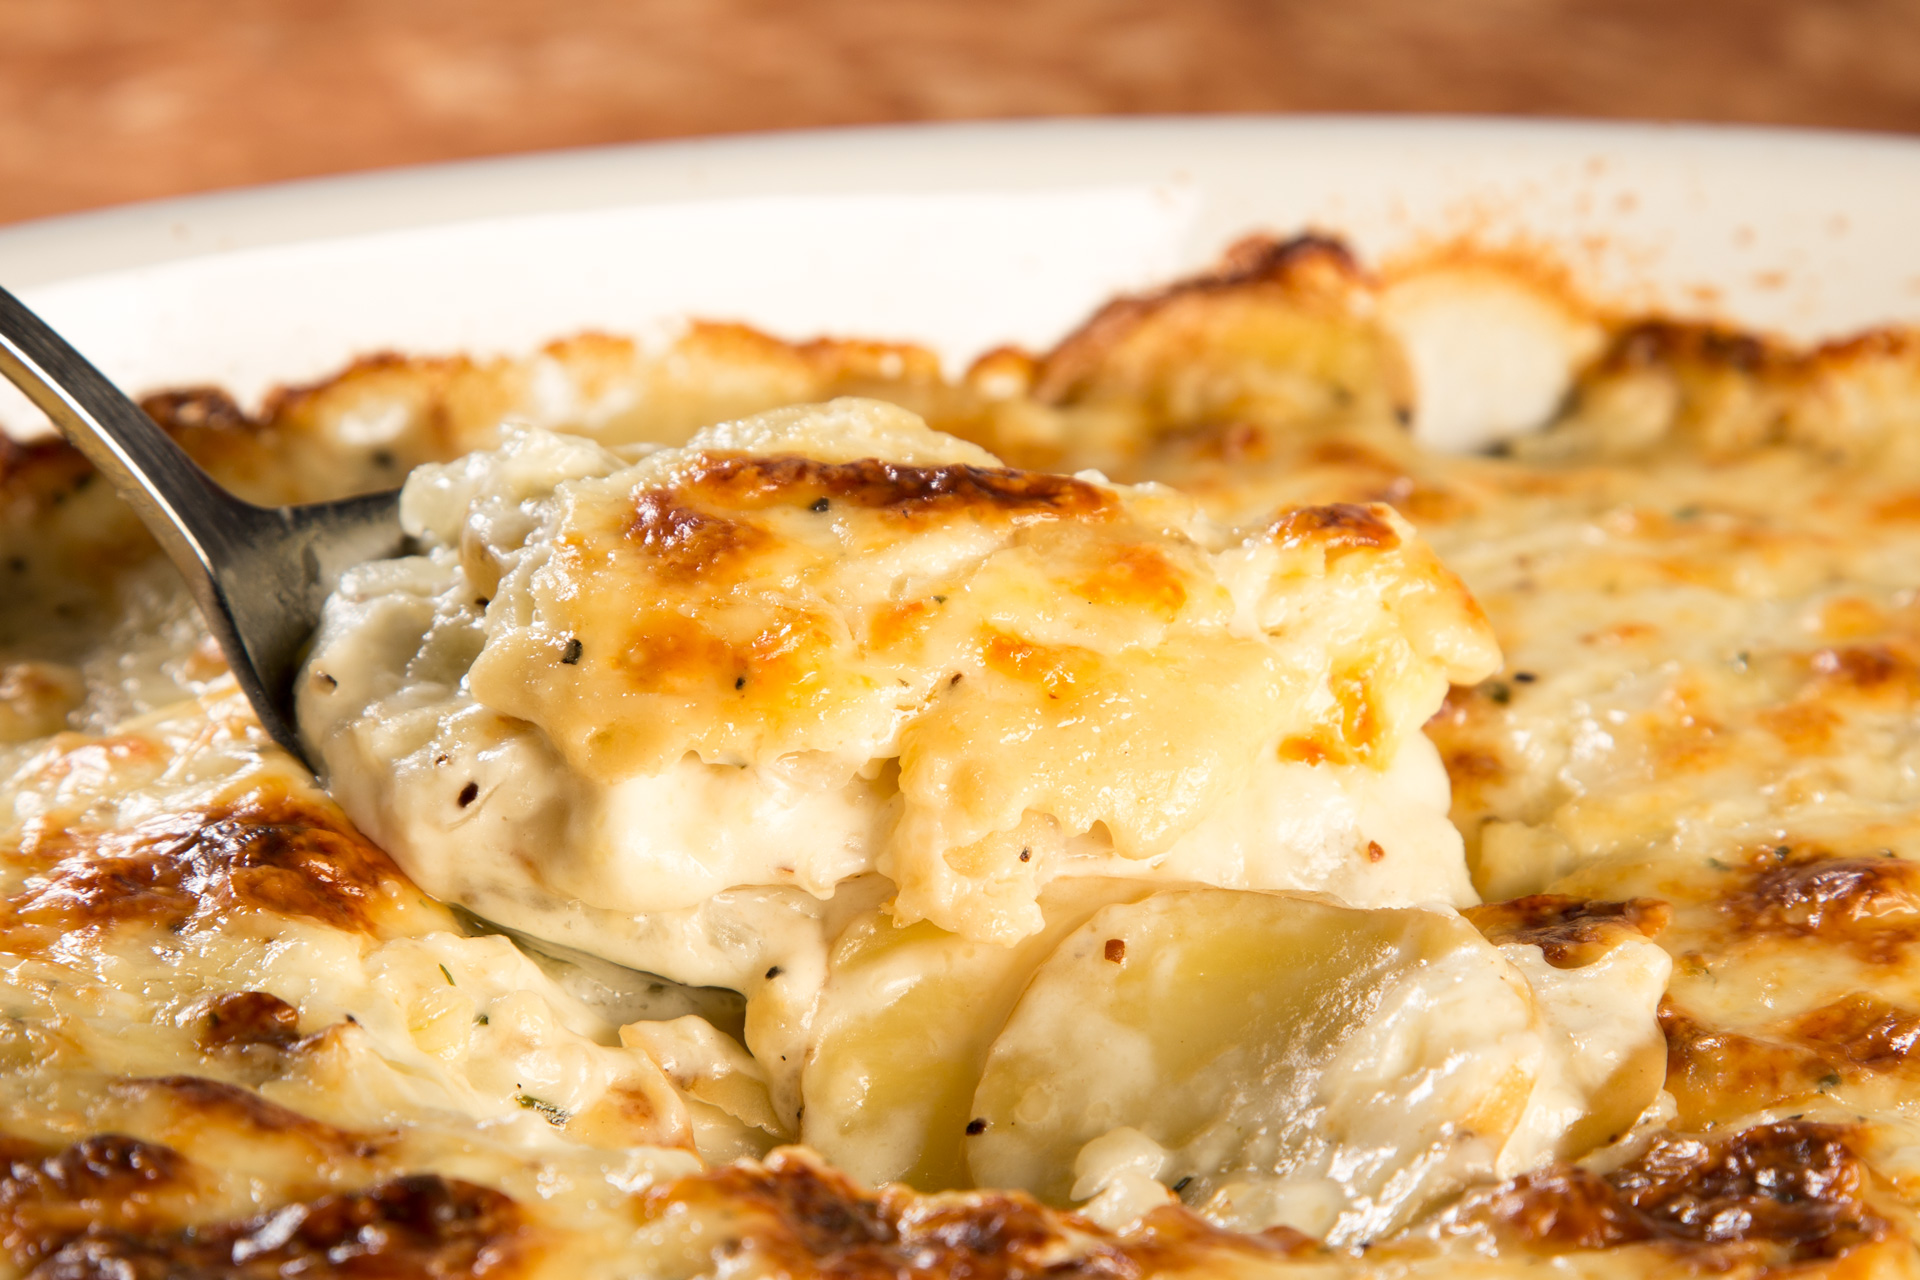 Classic Scalloped Potatoes//Photo by Lance Mellenbruch